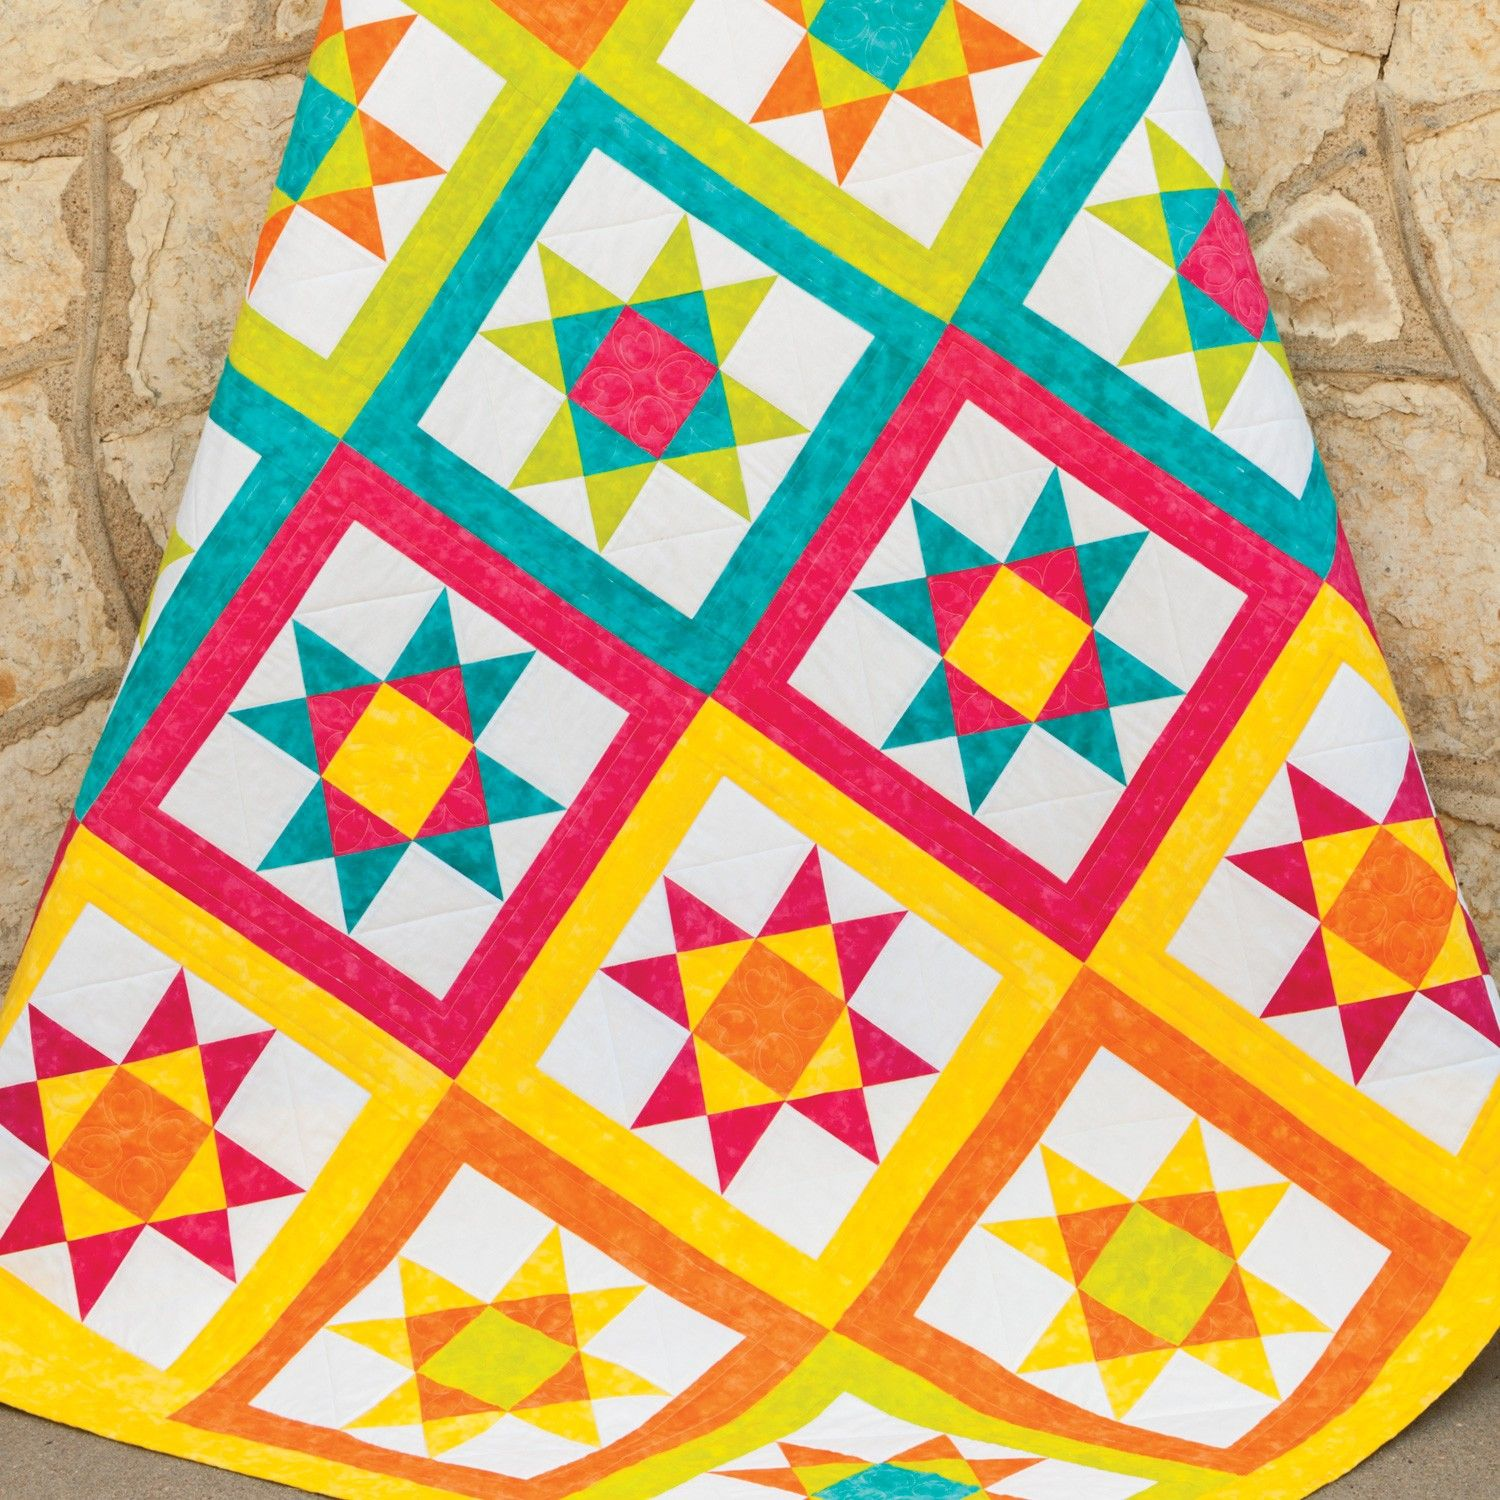 Continuous Line Quilting Patterns Free Downloads Custom Decorating Ideas